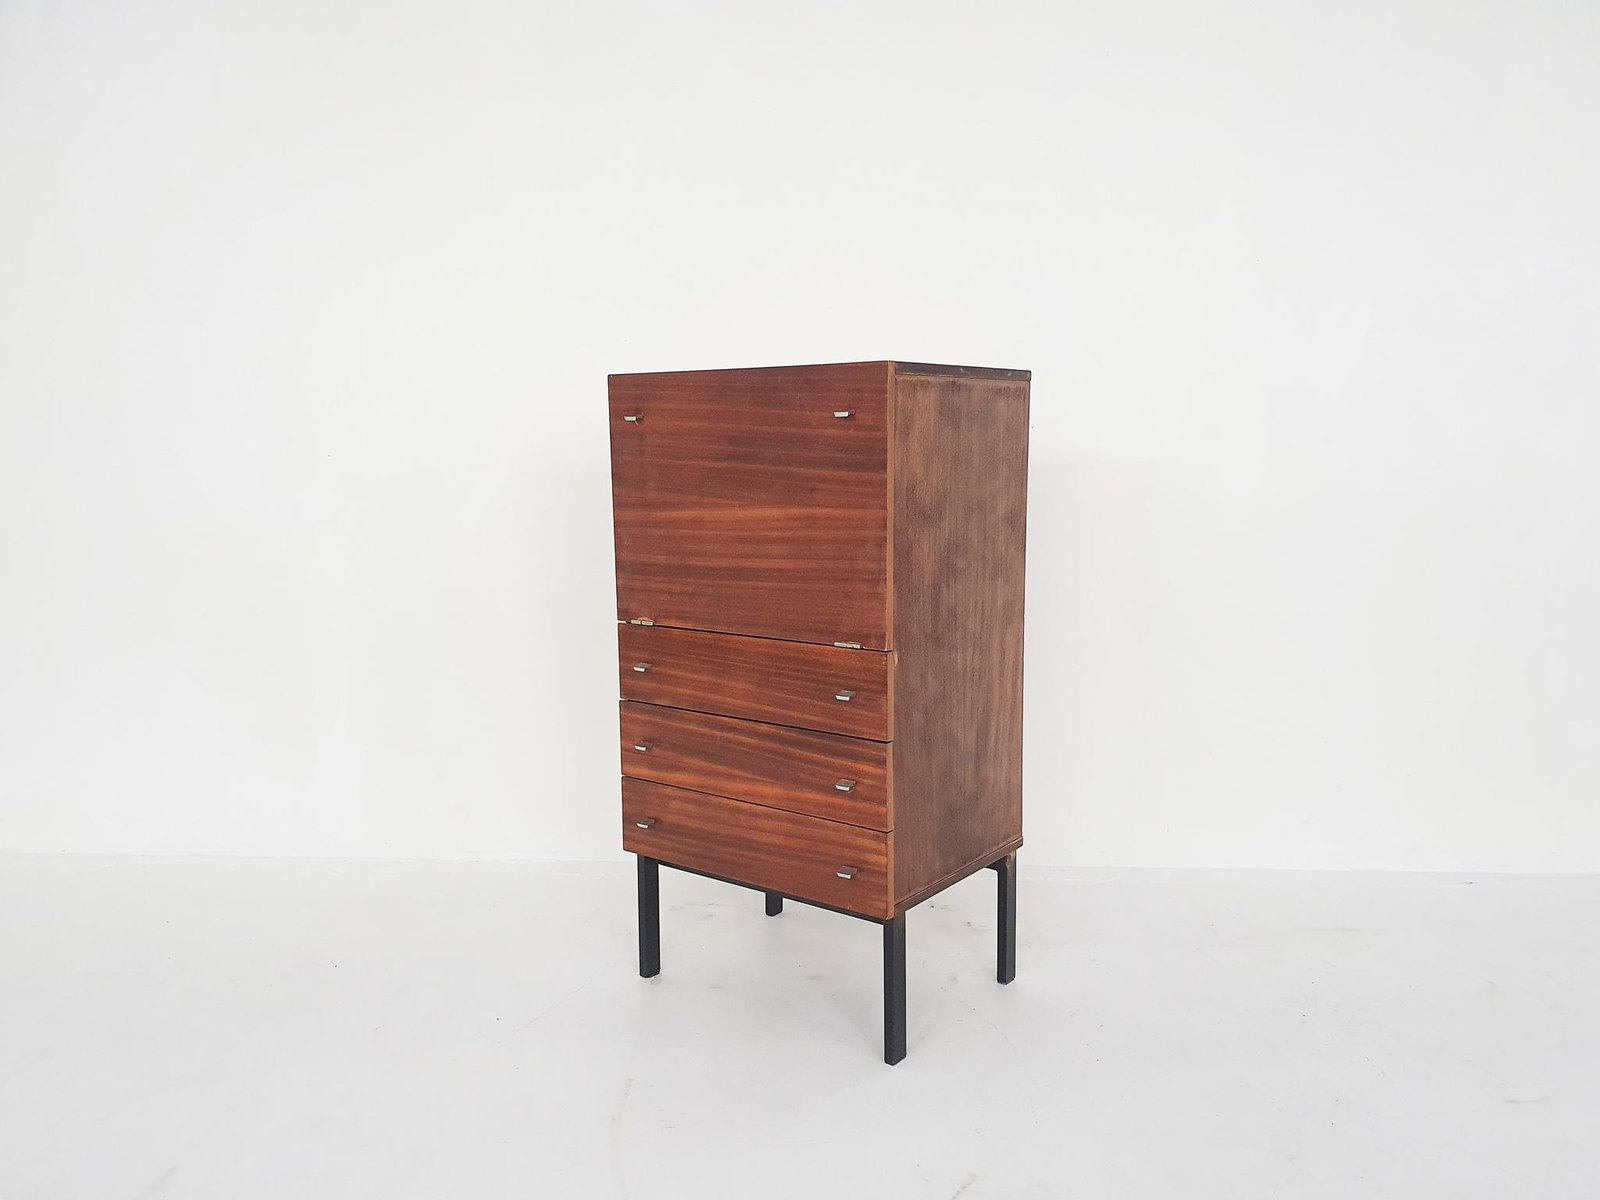 Bar Cabinet By Pierre Guariche For Meurop Belgium 1960 S For Sale At Pamono